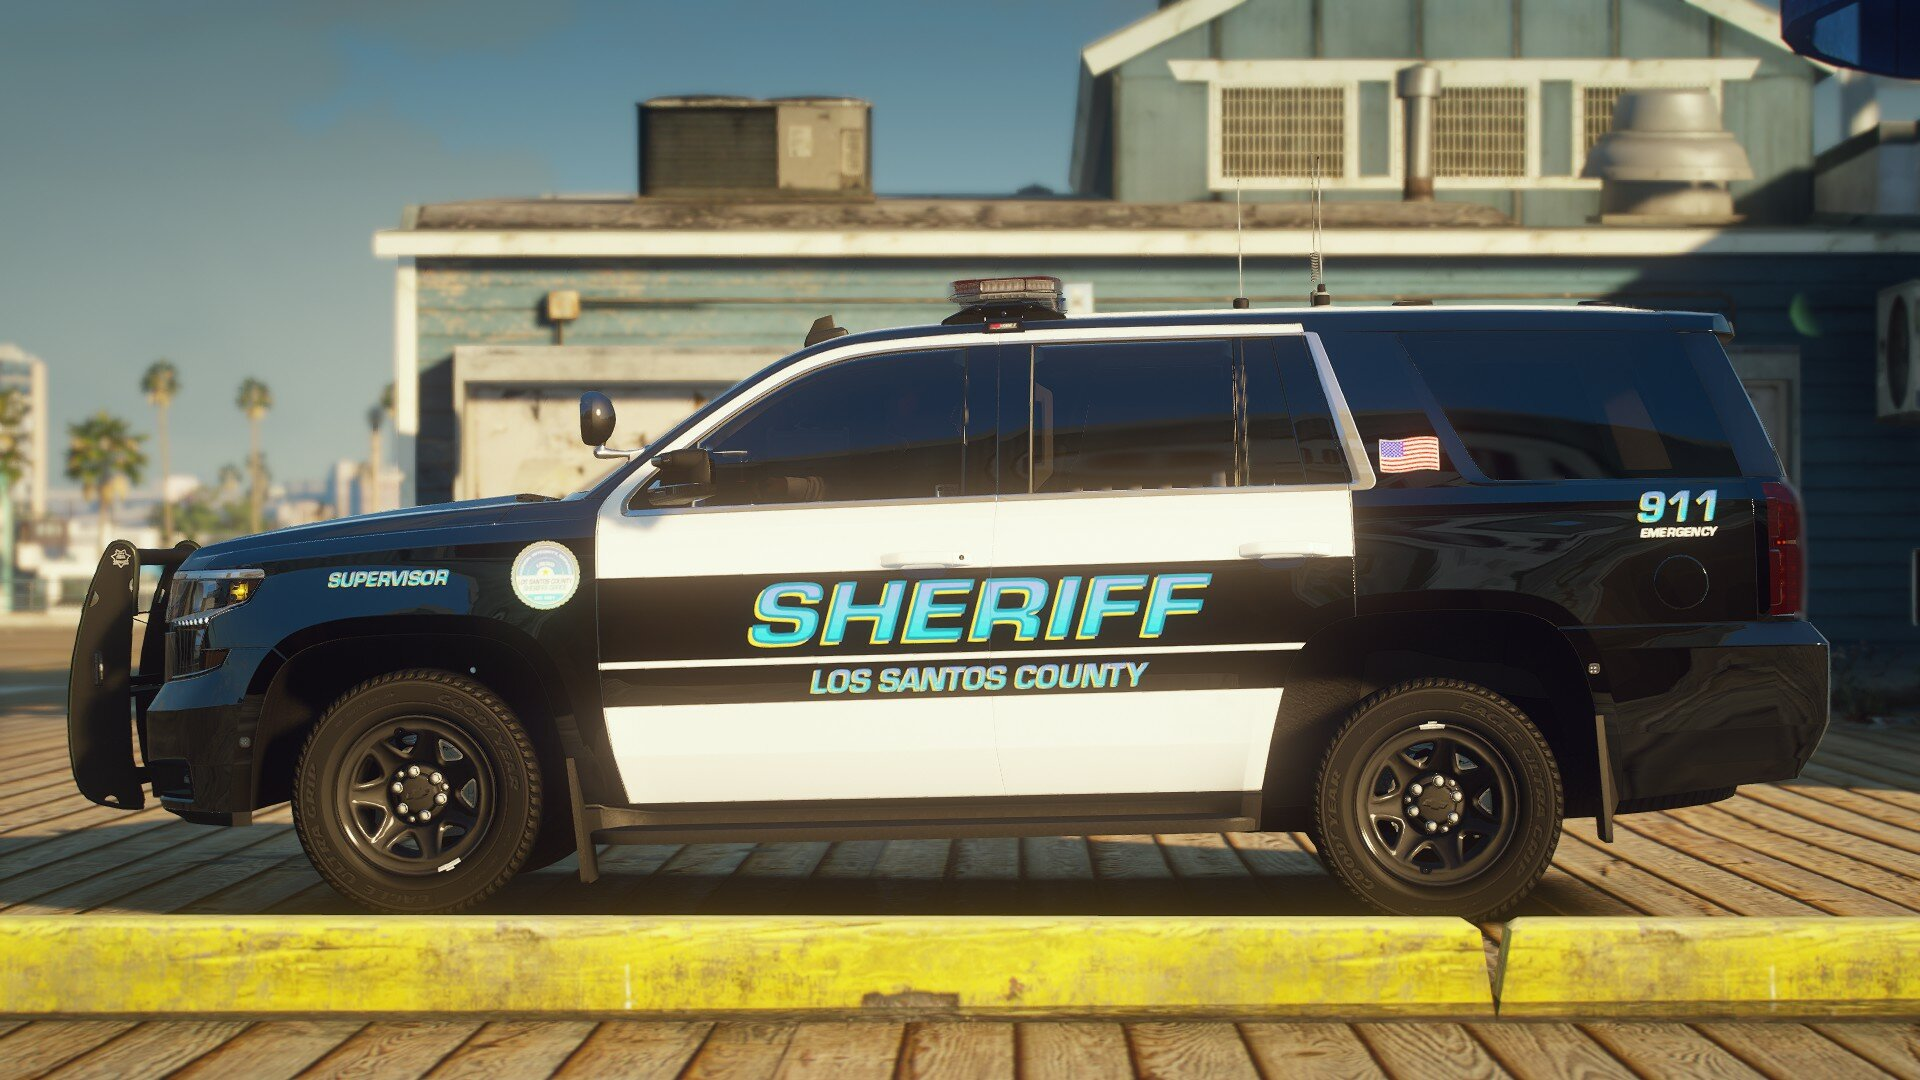 New LSCSO Texture mega pack that is in progress